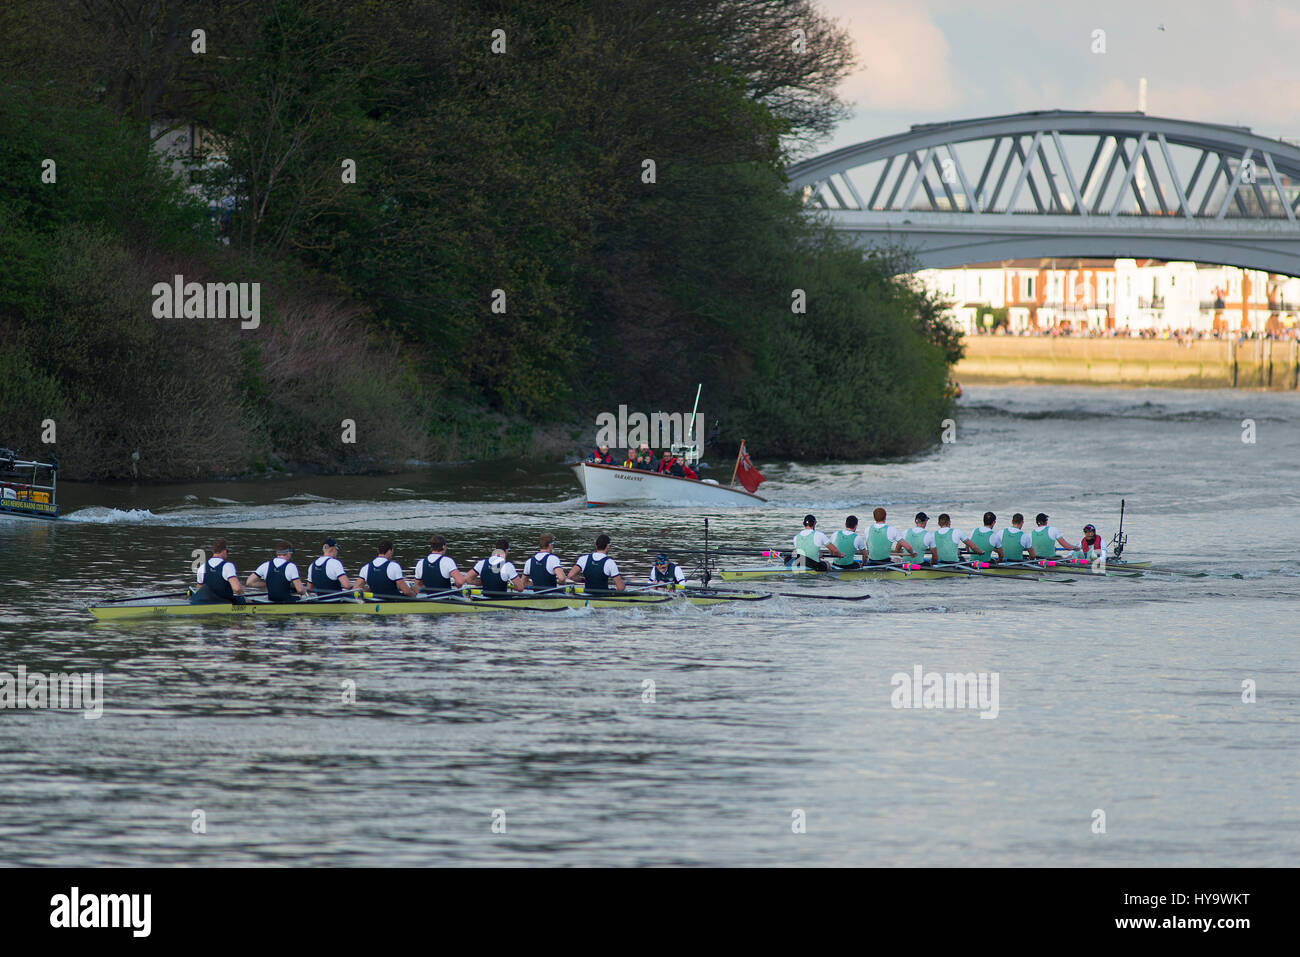 Barnes Bridge, London, UK. 2nd April, 2017. The Cancer Research UK Boat Races take place in London, watched by millions - Stock Image